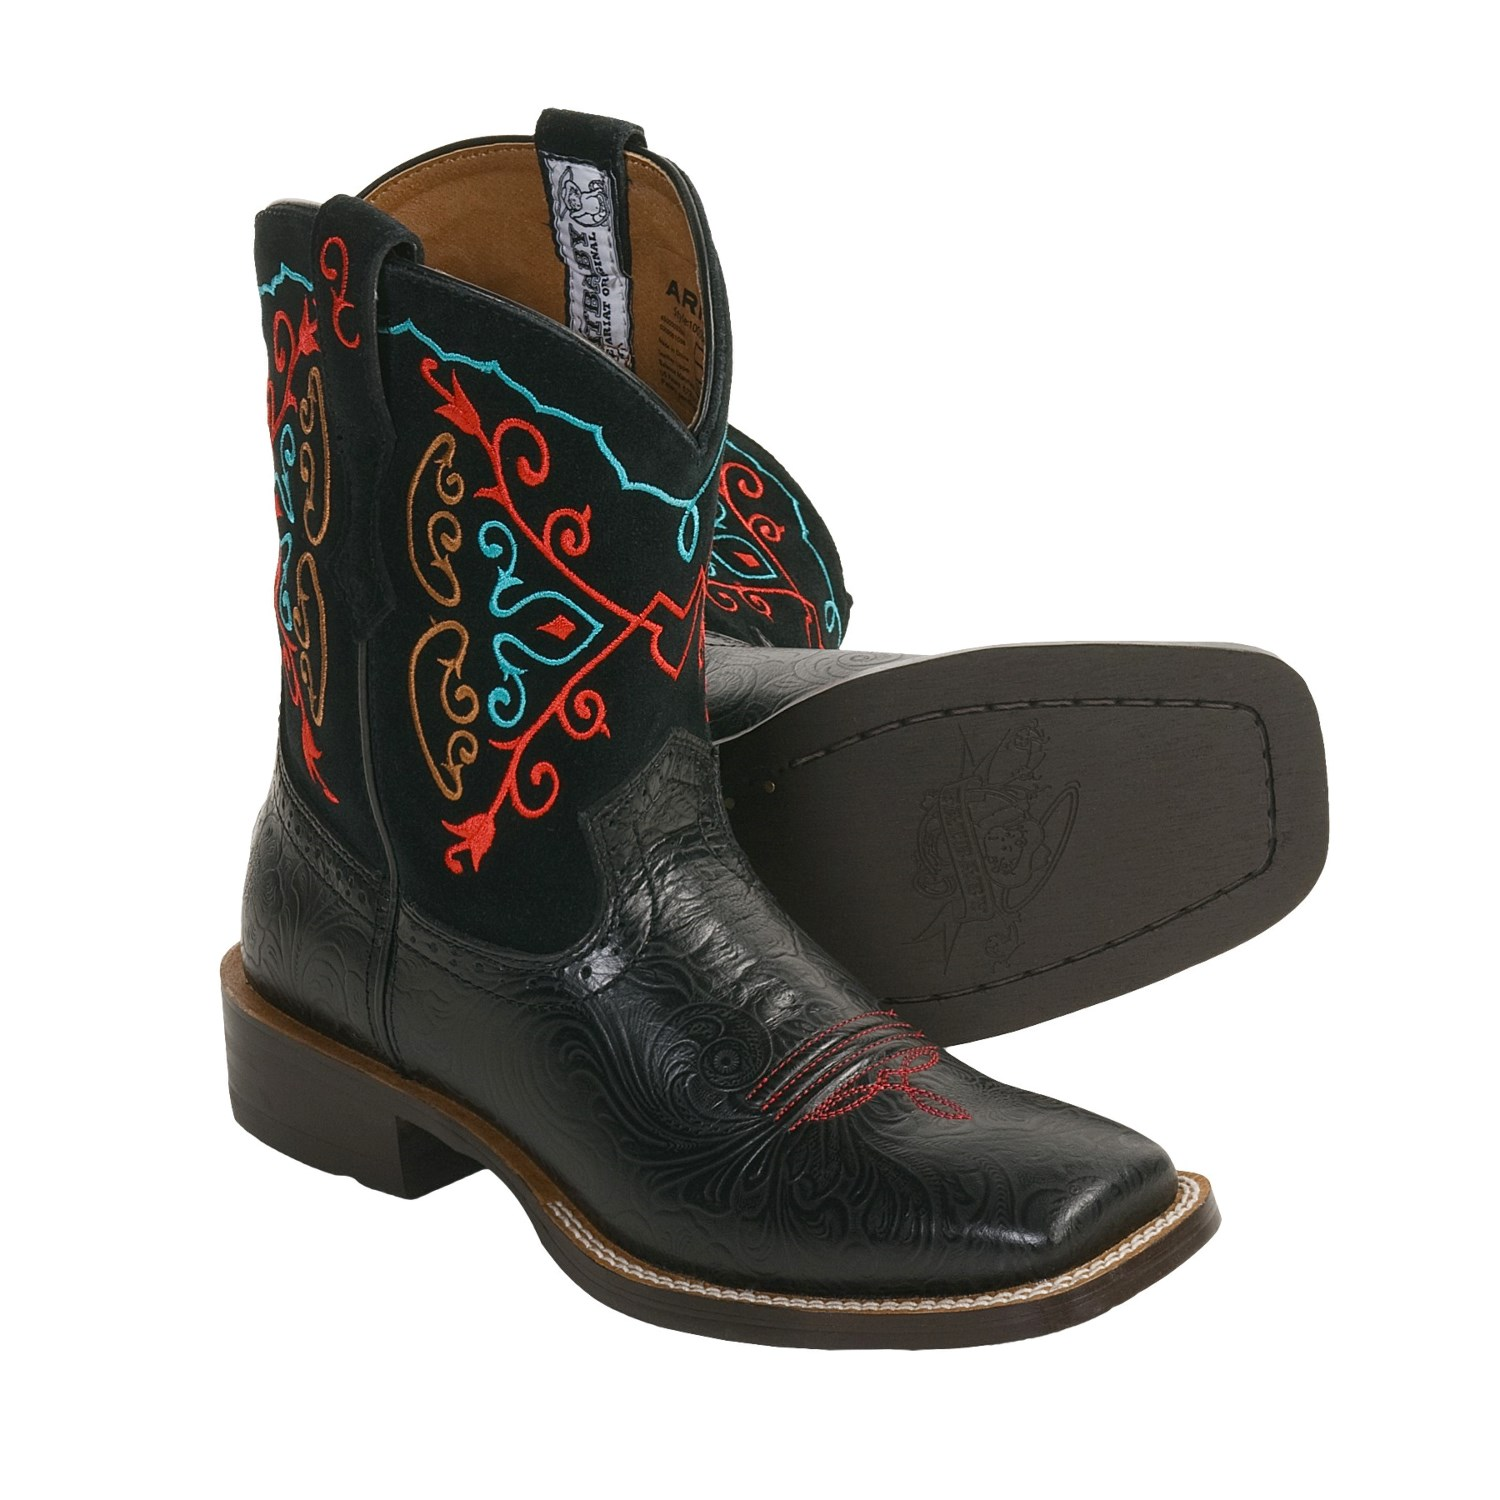 Ariat Rodeobaby Square Toe Boots For Women 3266m Save 35